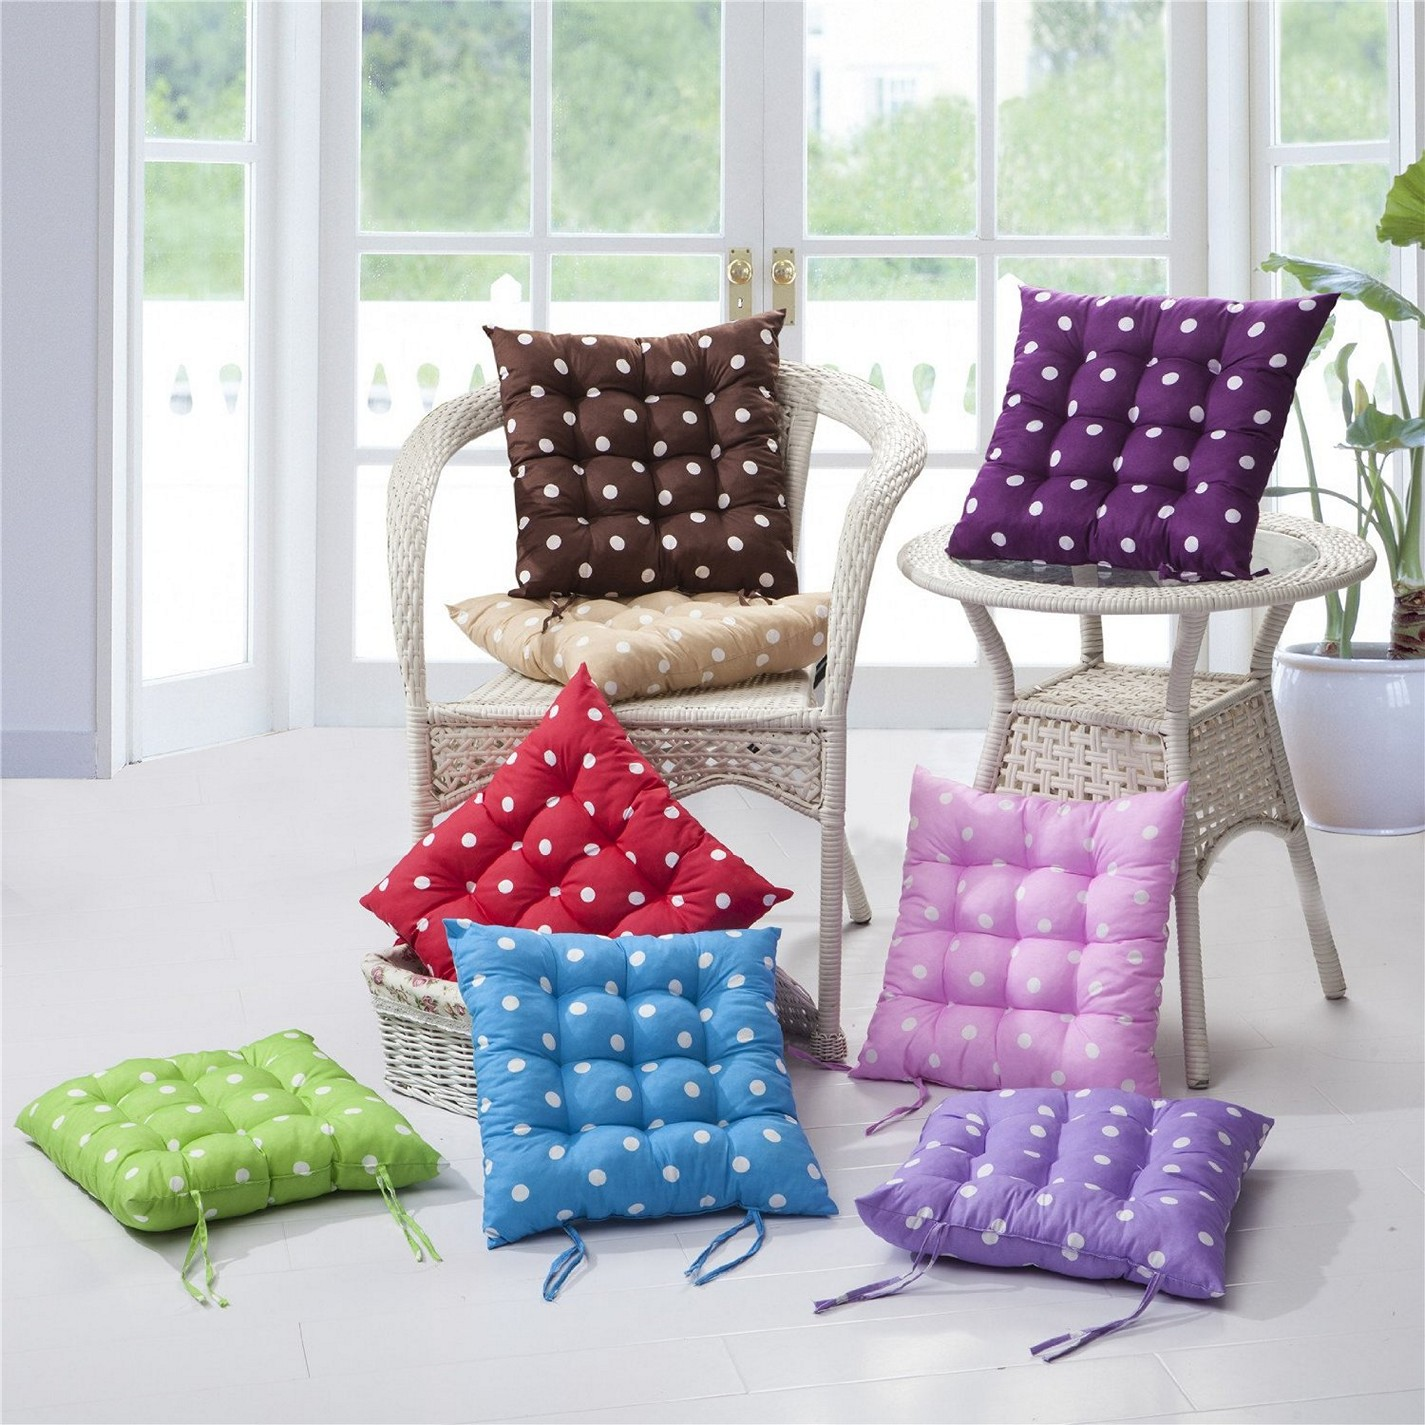 Chair Cushions For Kitchen Chairs Kitchen Chair Cushions With Ties Homesfeed